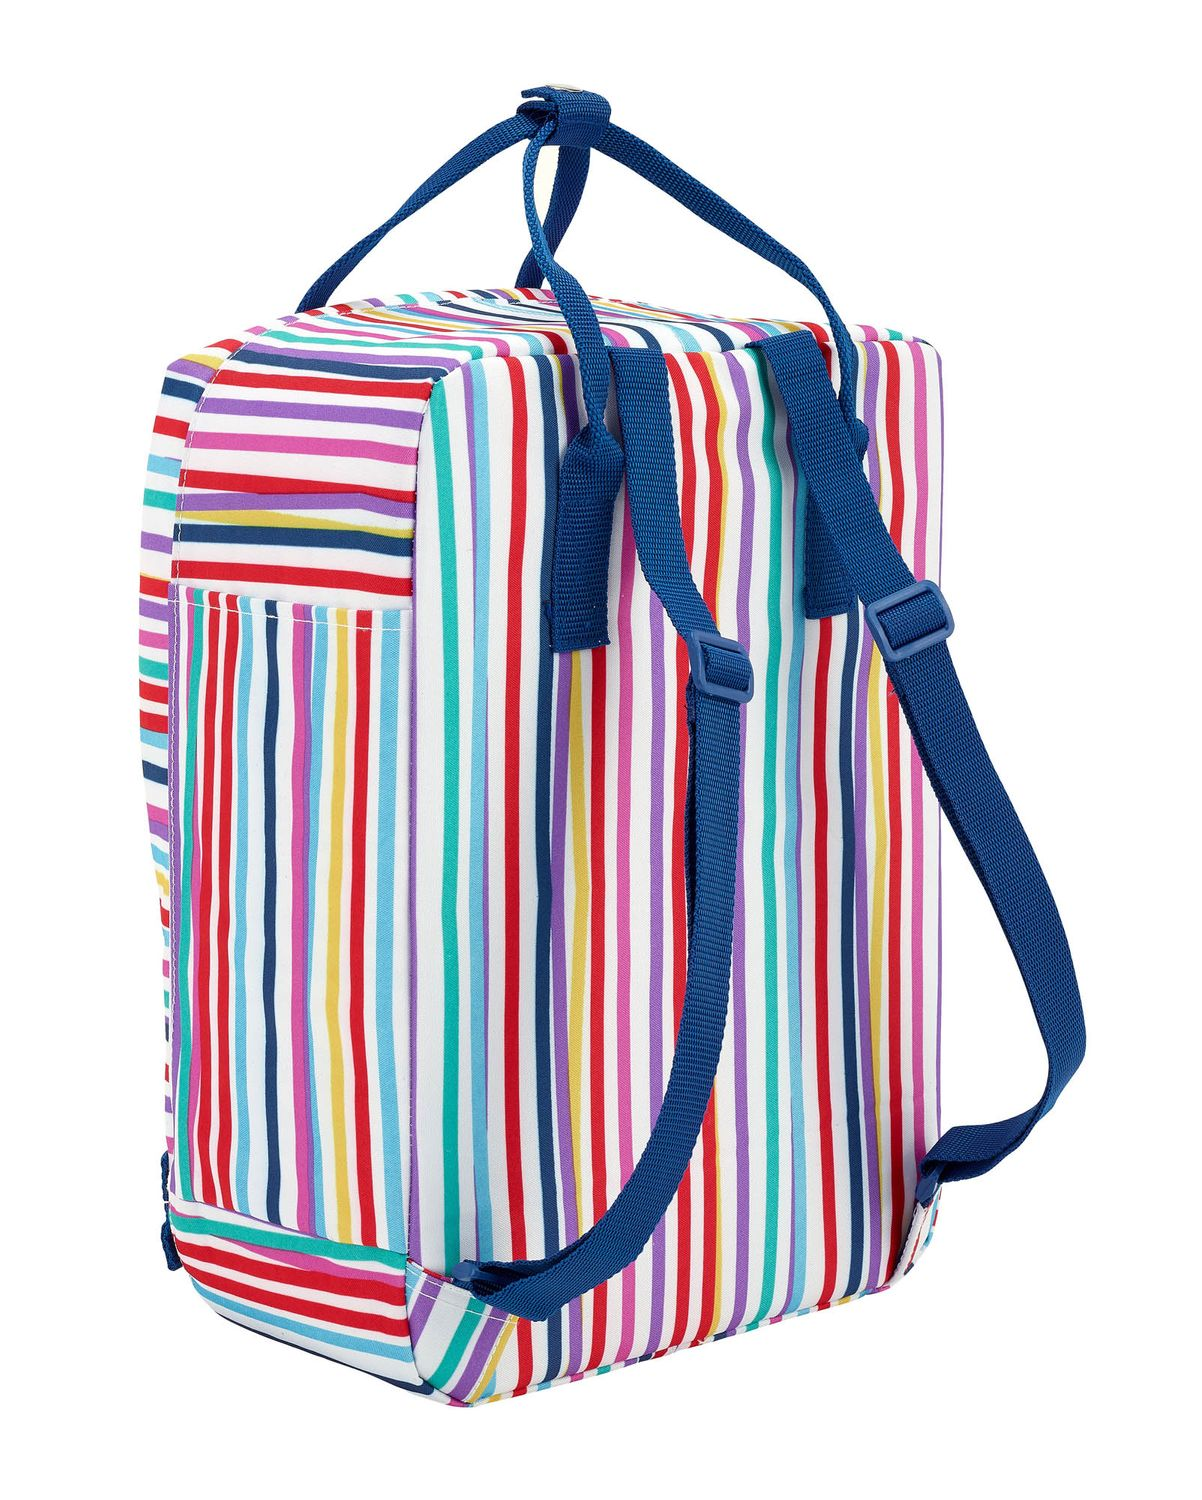 BENETTON Backpack with Handles Color Lines – image 2